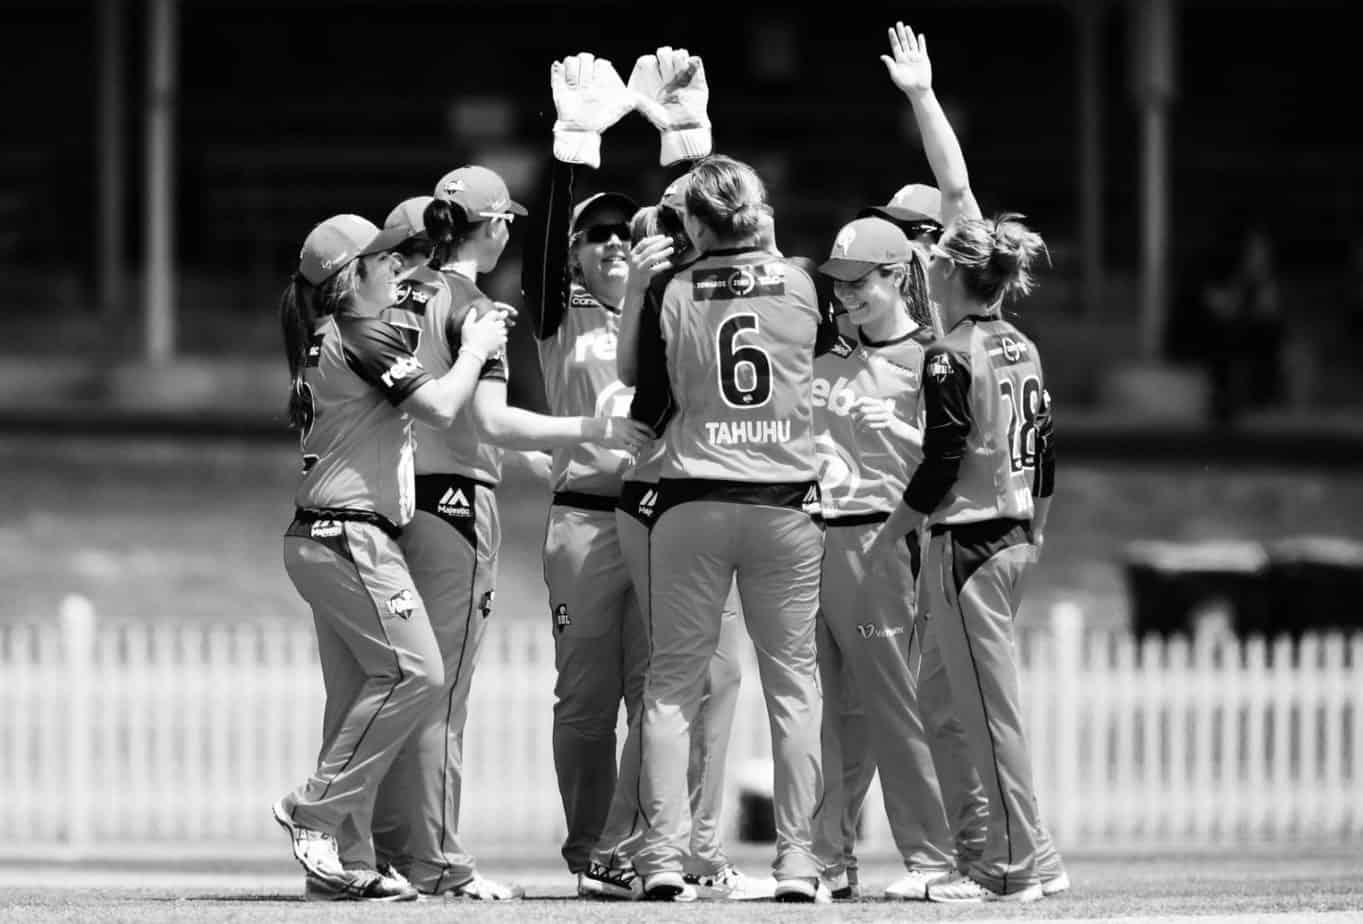 WBBL player profile: Lea Tahuhu